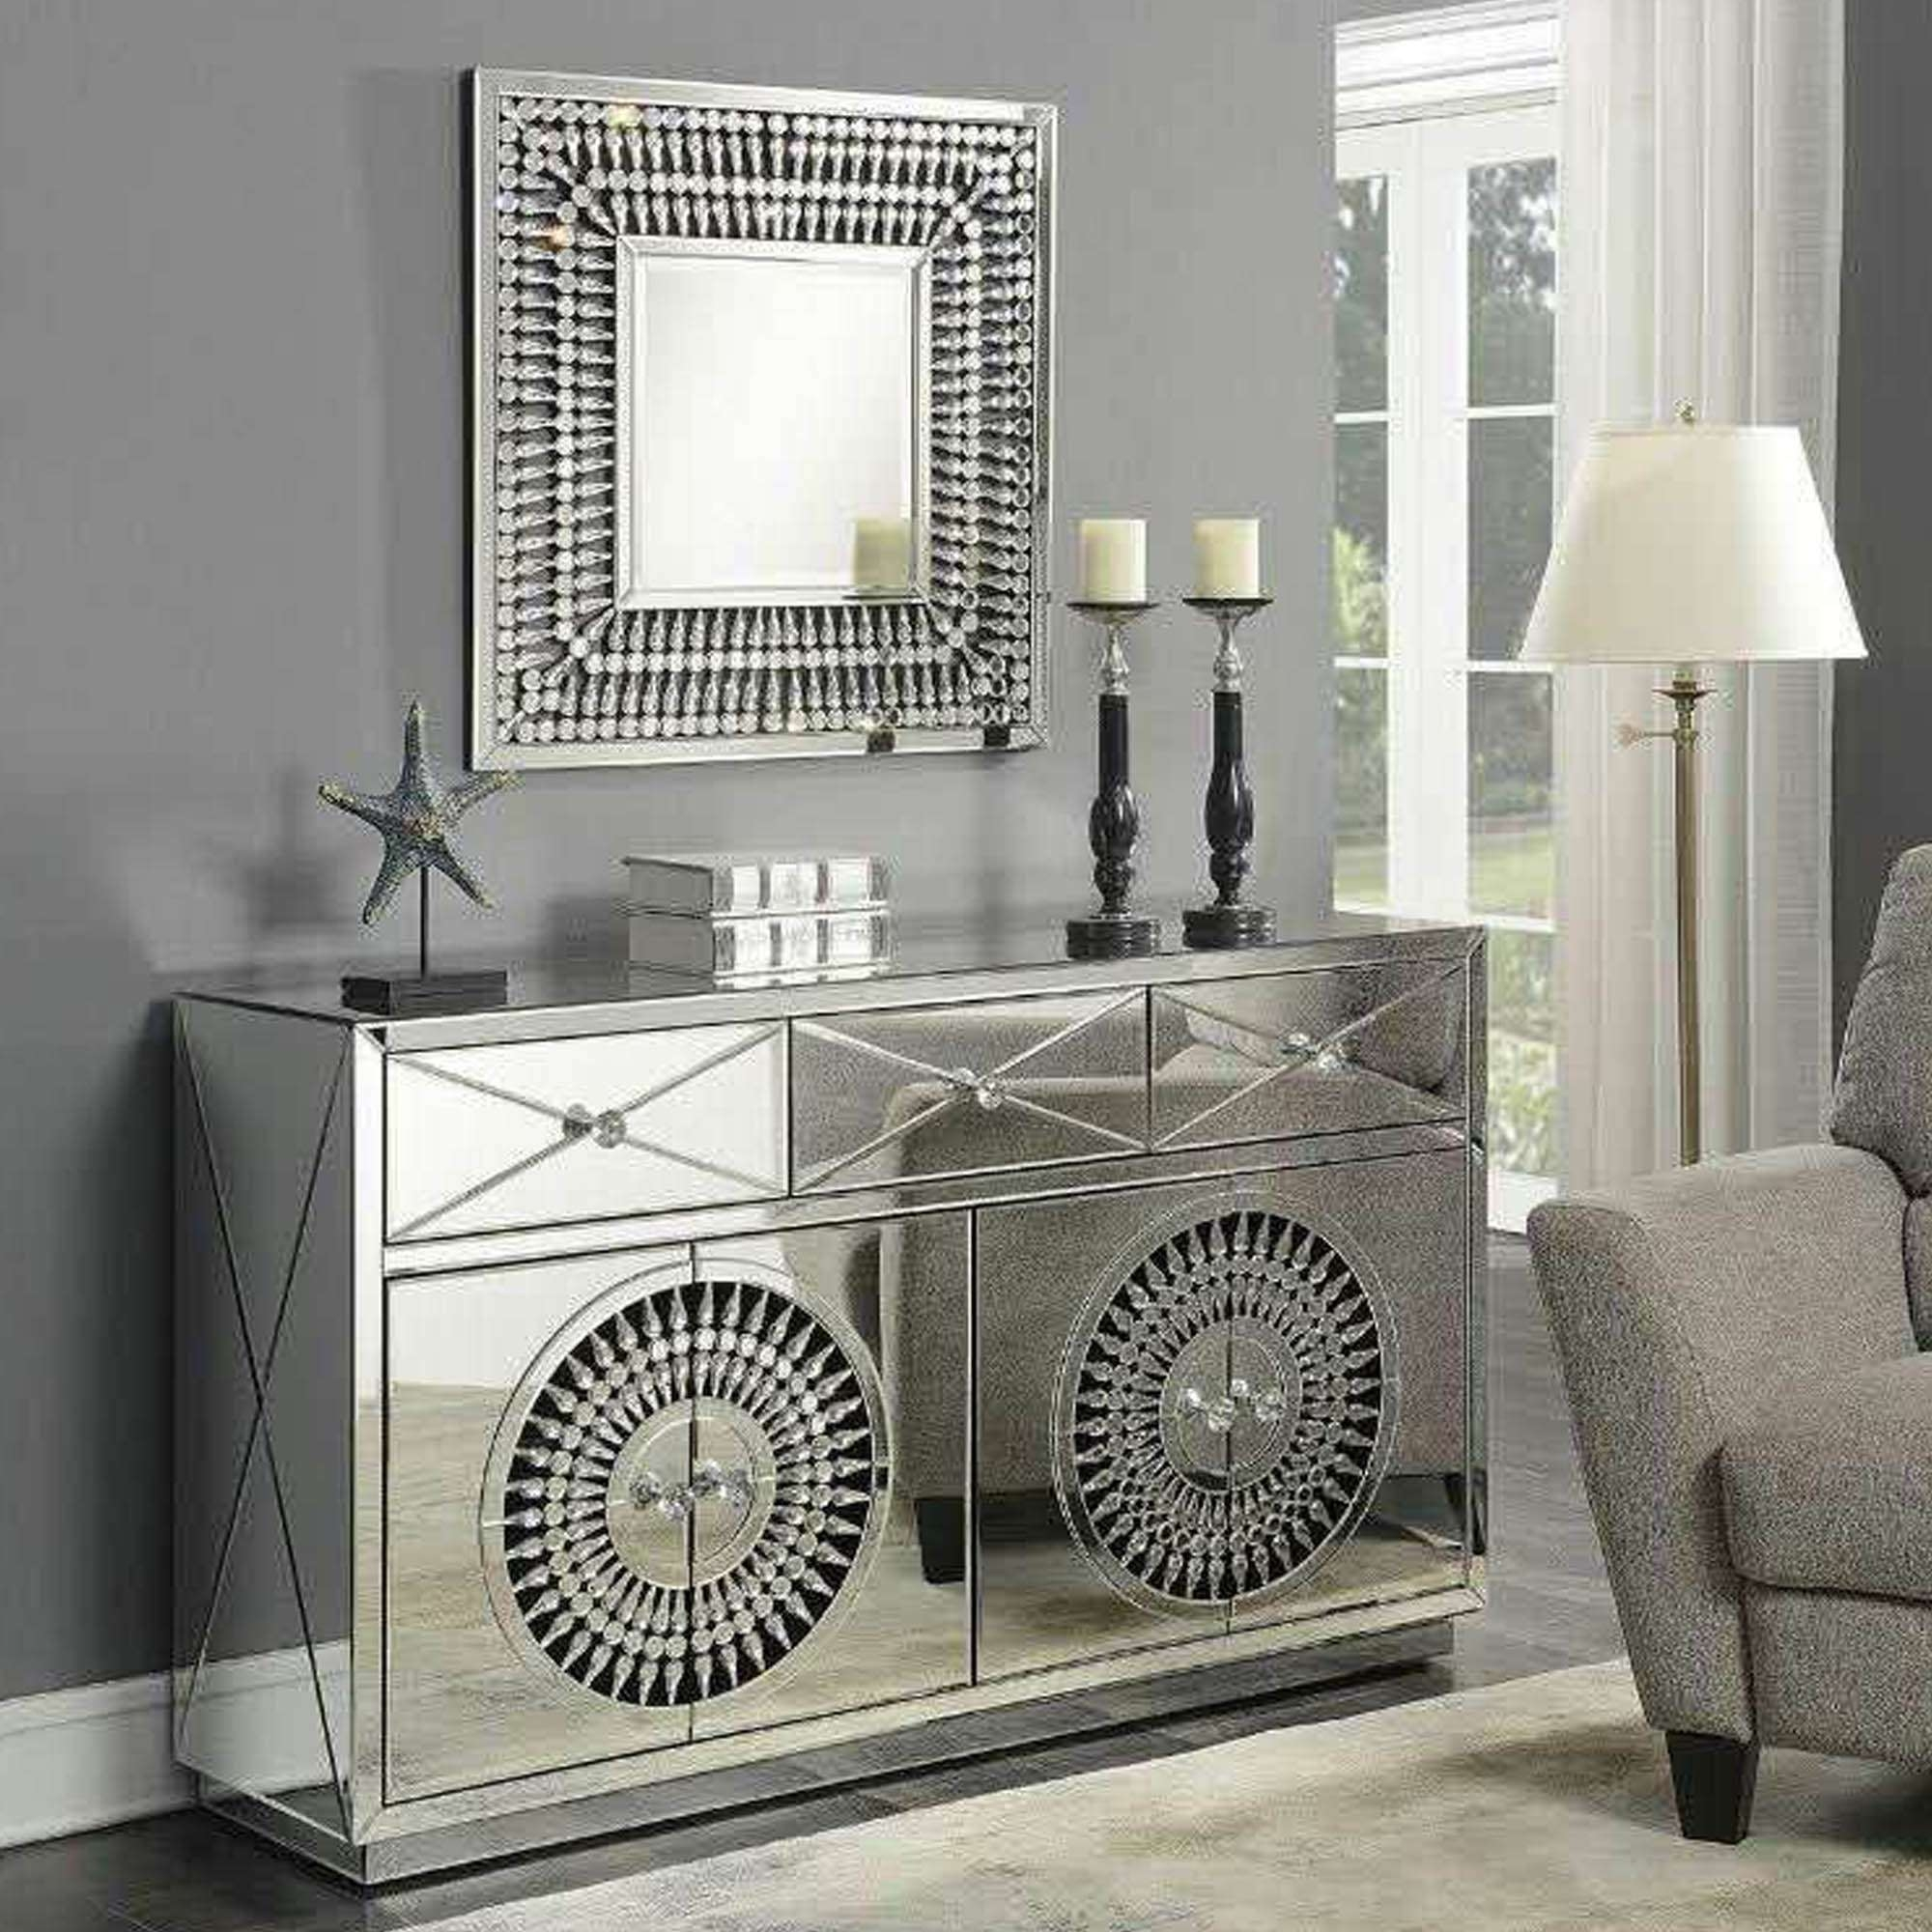 Crystal Mirrored Sideboard | Sideboard | Homesdirect365 Inside Mirrored Sideboards (View 15 of 20)